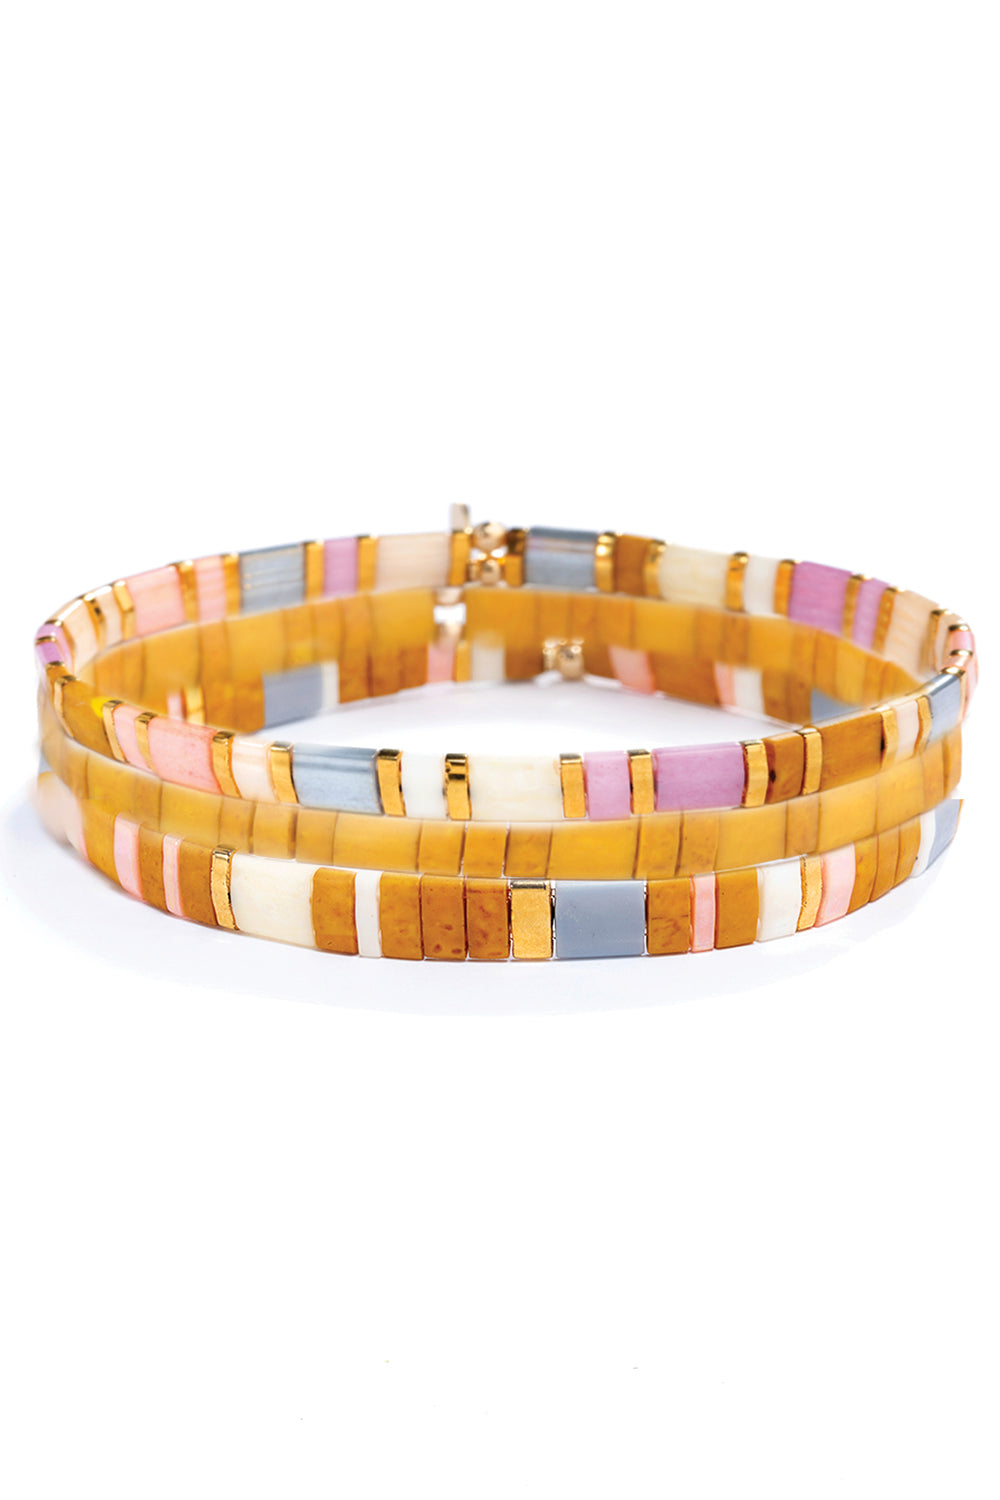 Tilu Naturale Bracelet Set in Multi